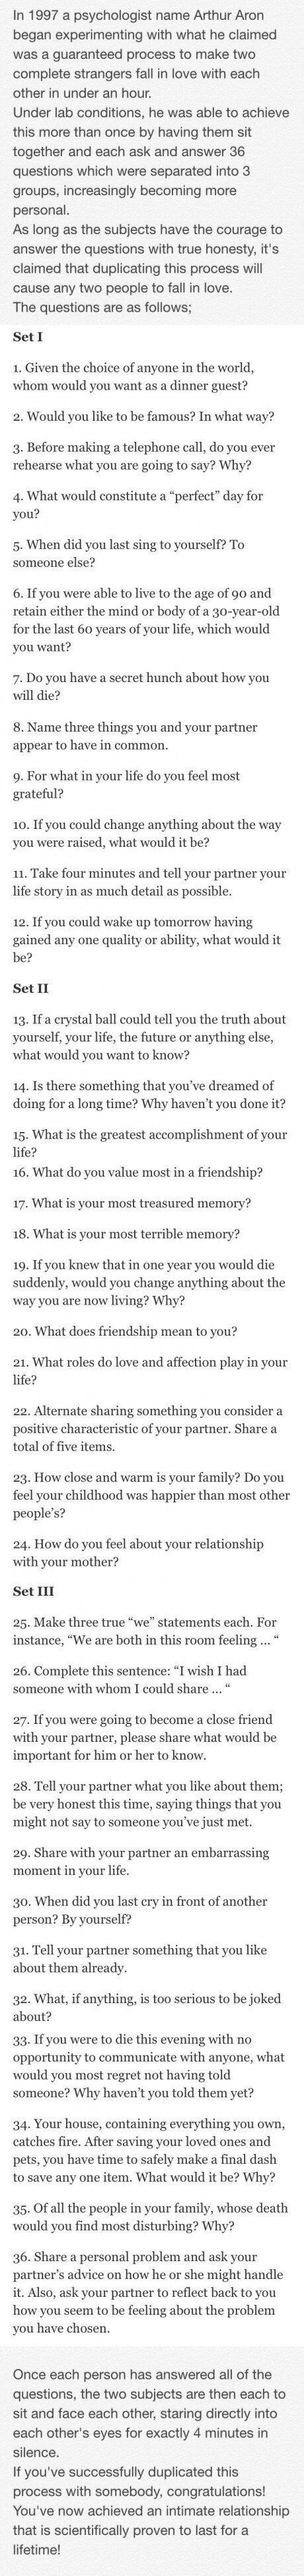 Good questions to ask a character